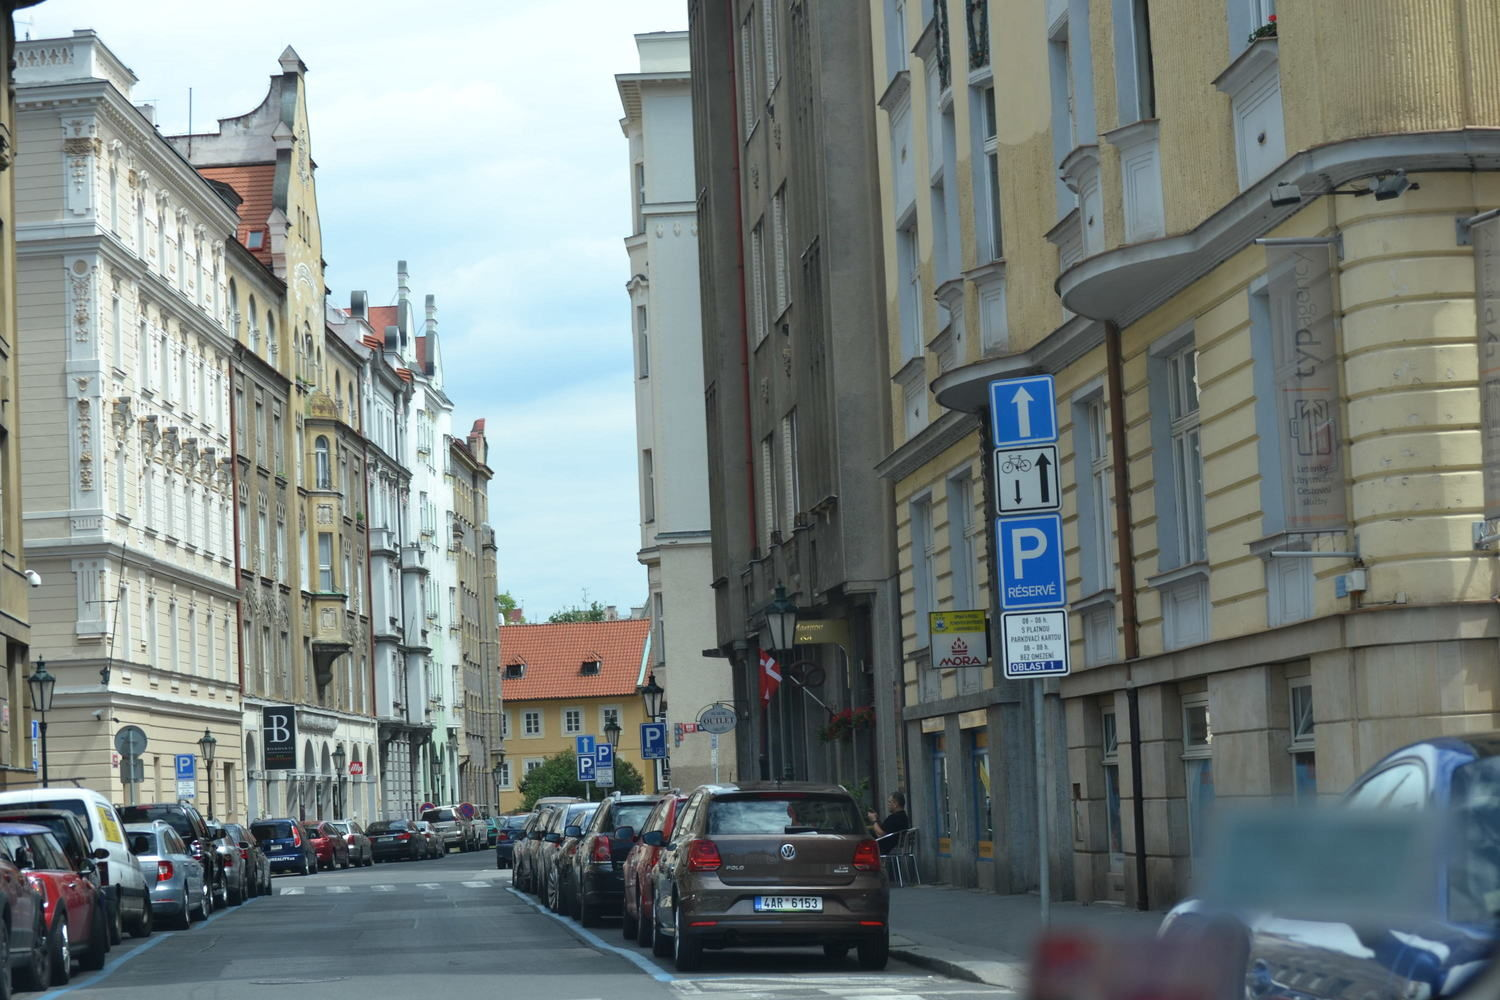 Cars and buildings along a street